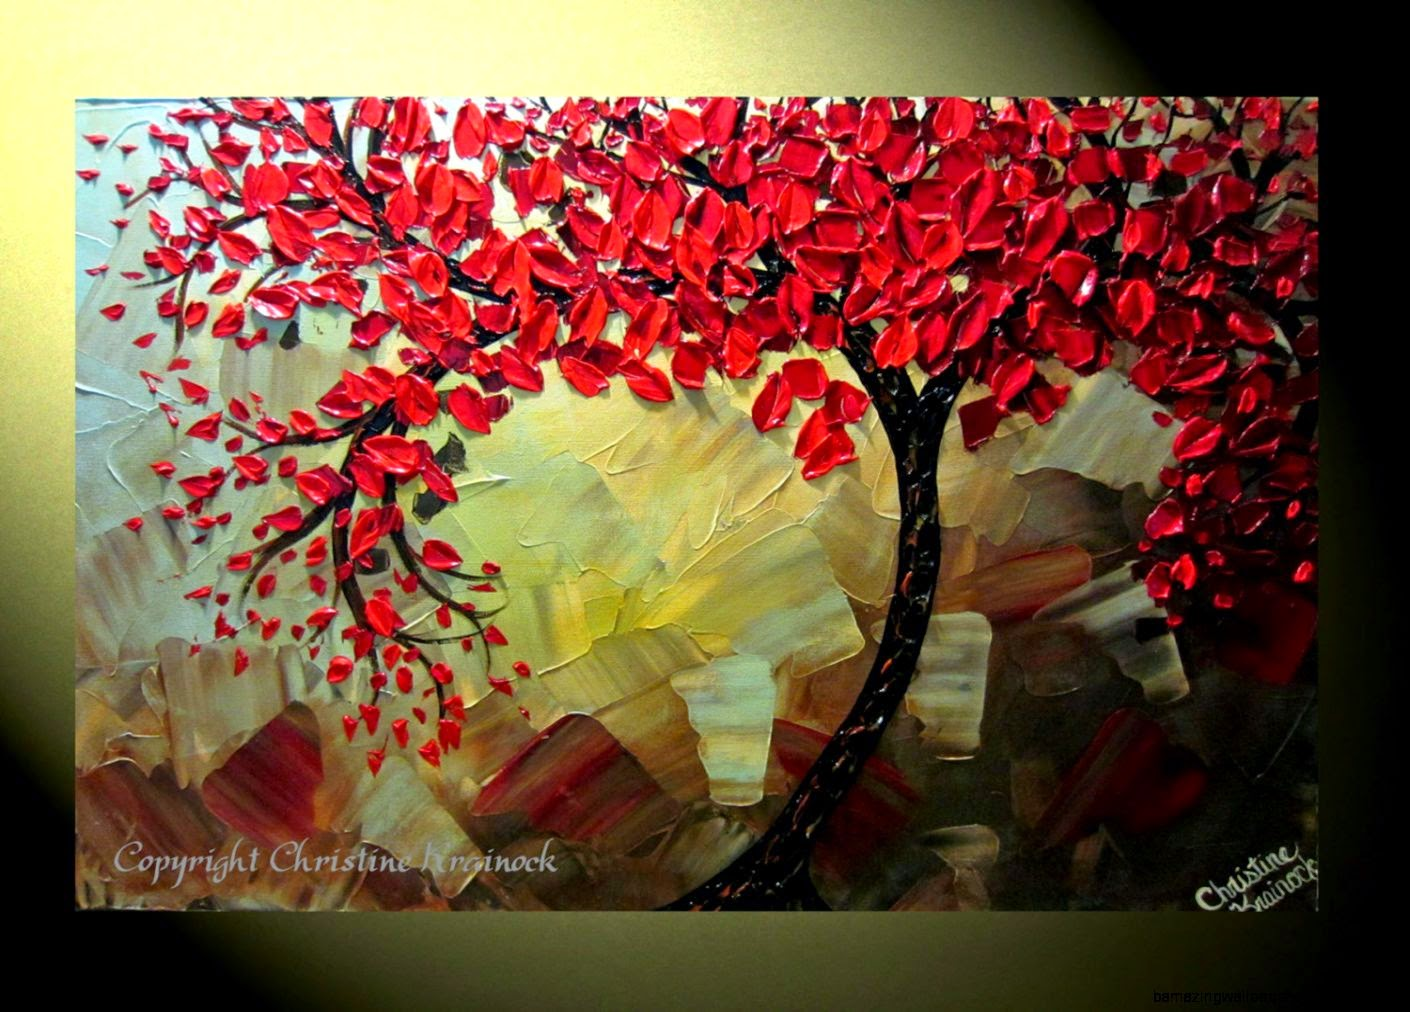 Original Abstract Tree Painting Textured Red by ChristineKrainock